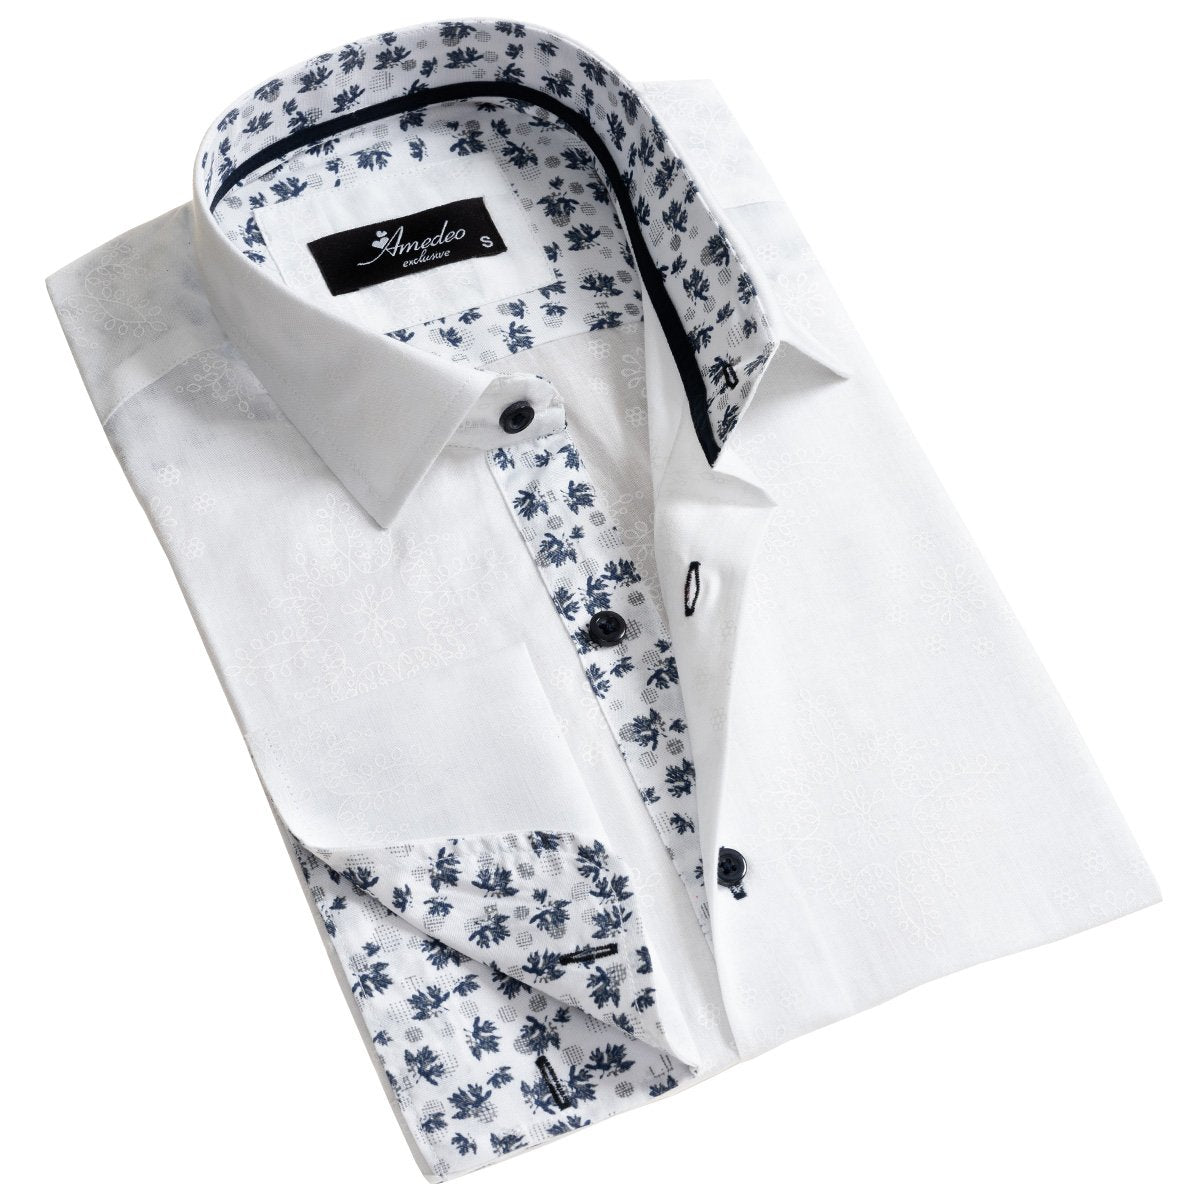 White and Blue Floral Dark Purple Men's Slim Fit French Cuff Dress Shirts with Cufflink Holes - Casual and Formal - Amedeo Exclusive